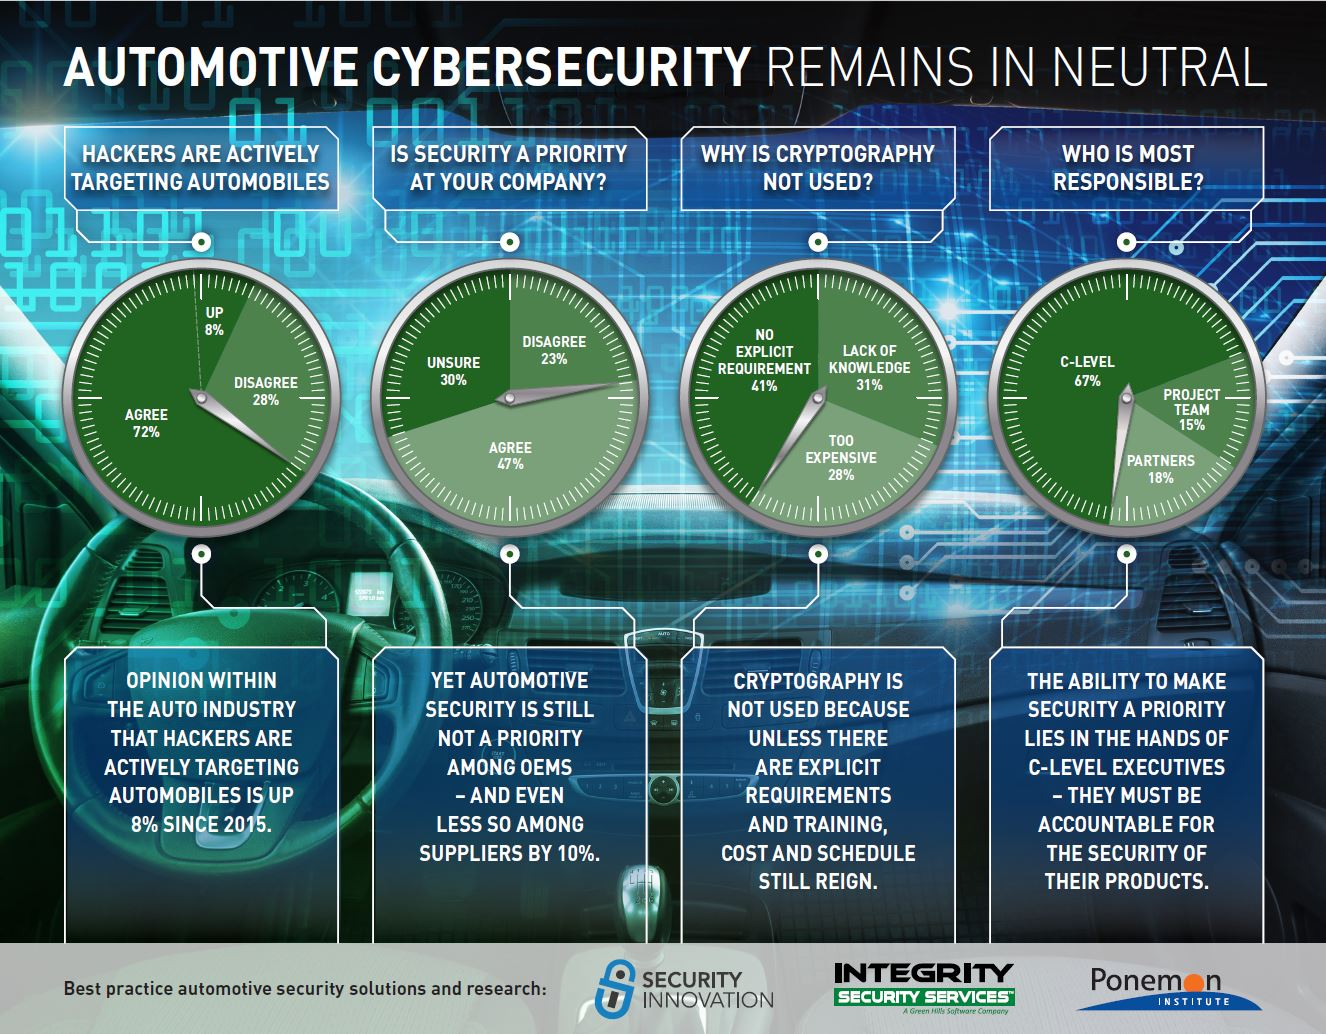 car-cybersecurityskills-gap-infographic.jpg